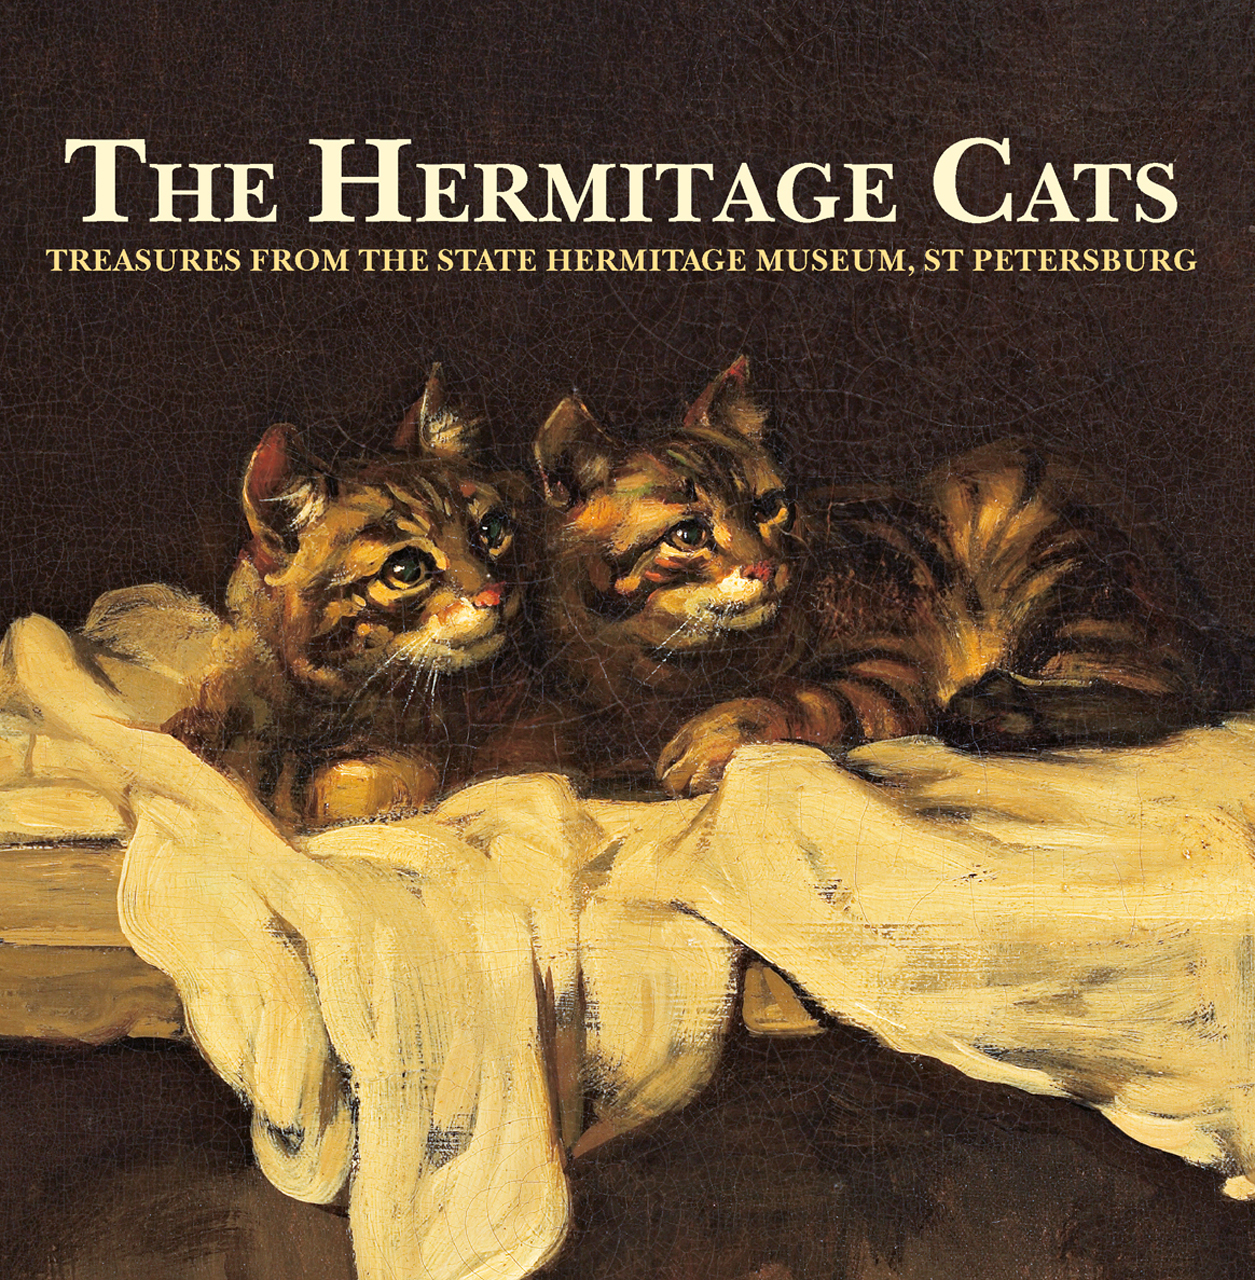 The Hermitage Cats Treasures From The State Hermitage